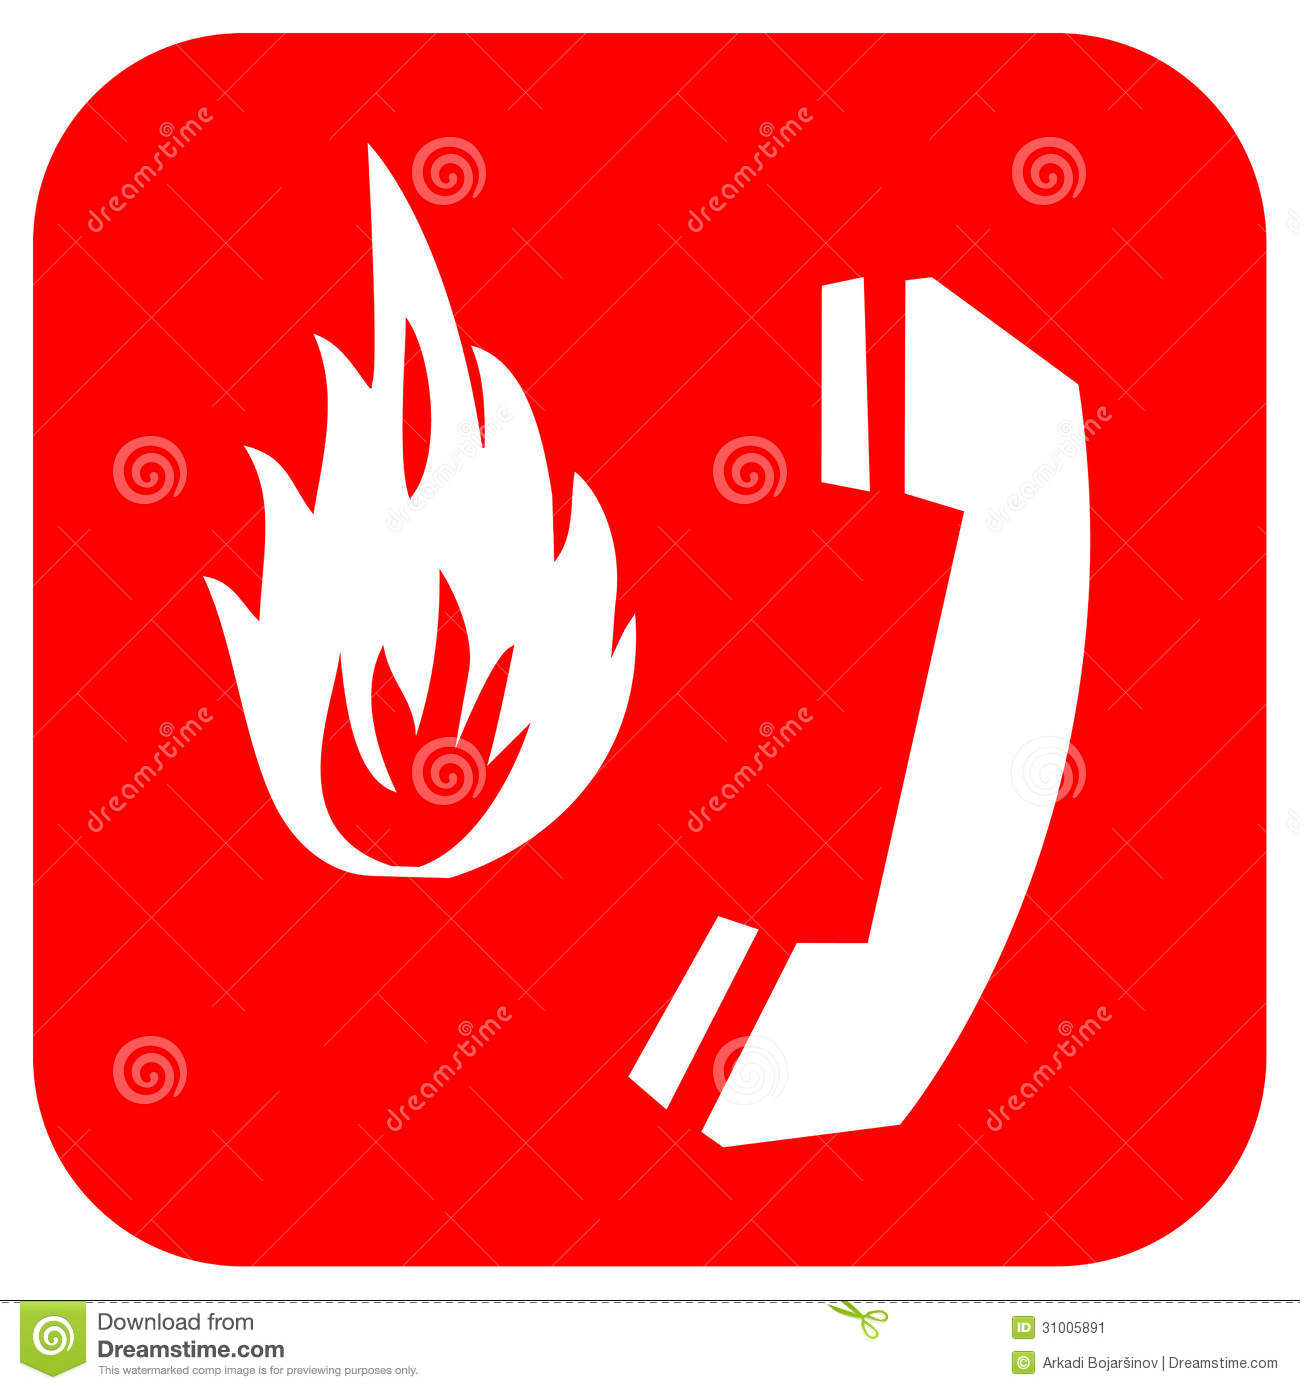 Garden Design Solutions in addition Sai clip art317 furthermore 172010 together with Which Michael Jackson Did You Prefer Black Tan Or White likewise International Electrical Symbols. on fire alarm control panel clip art